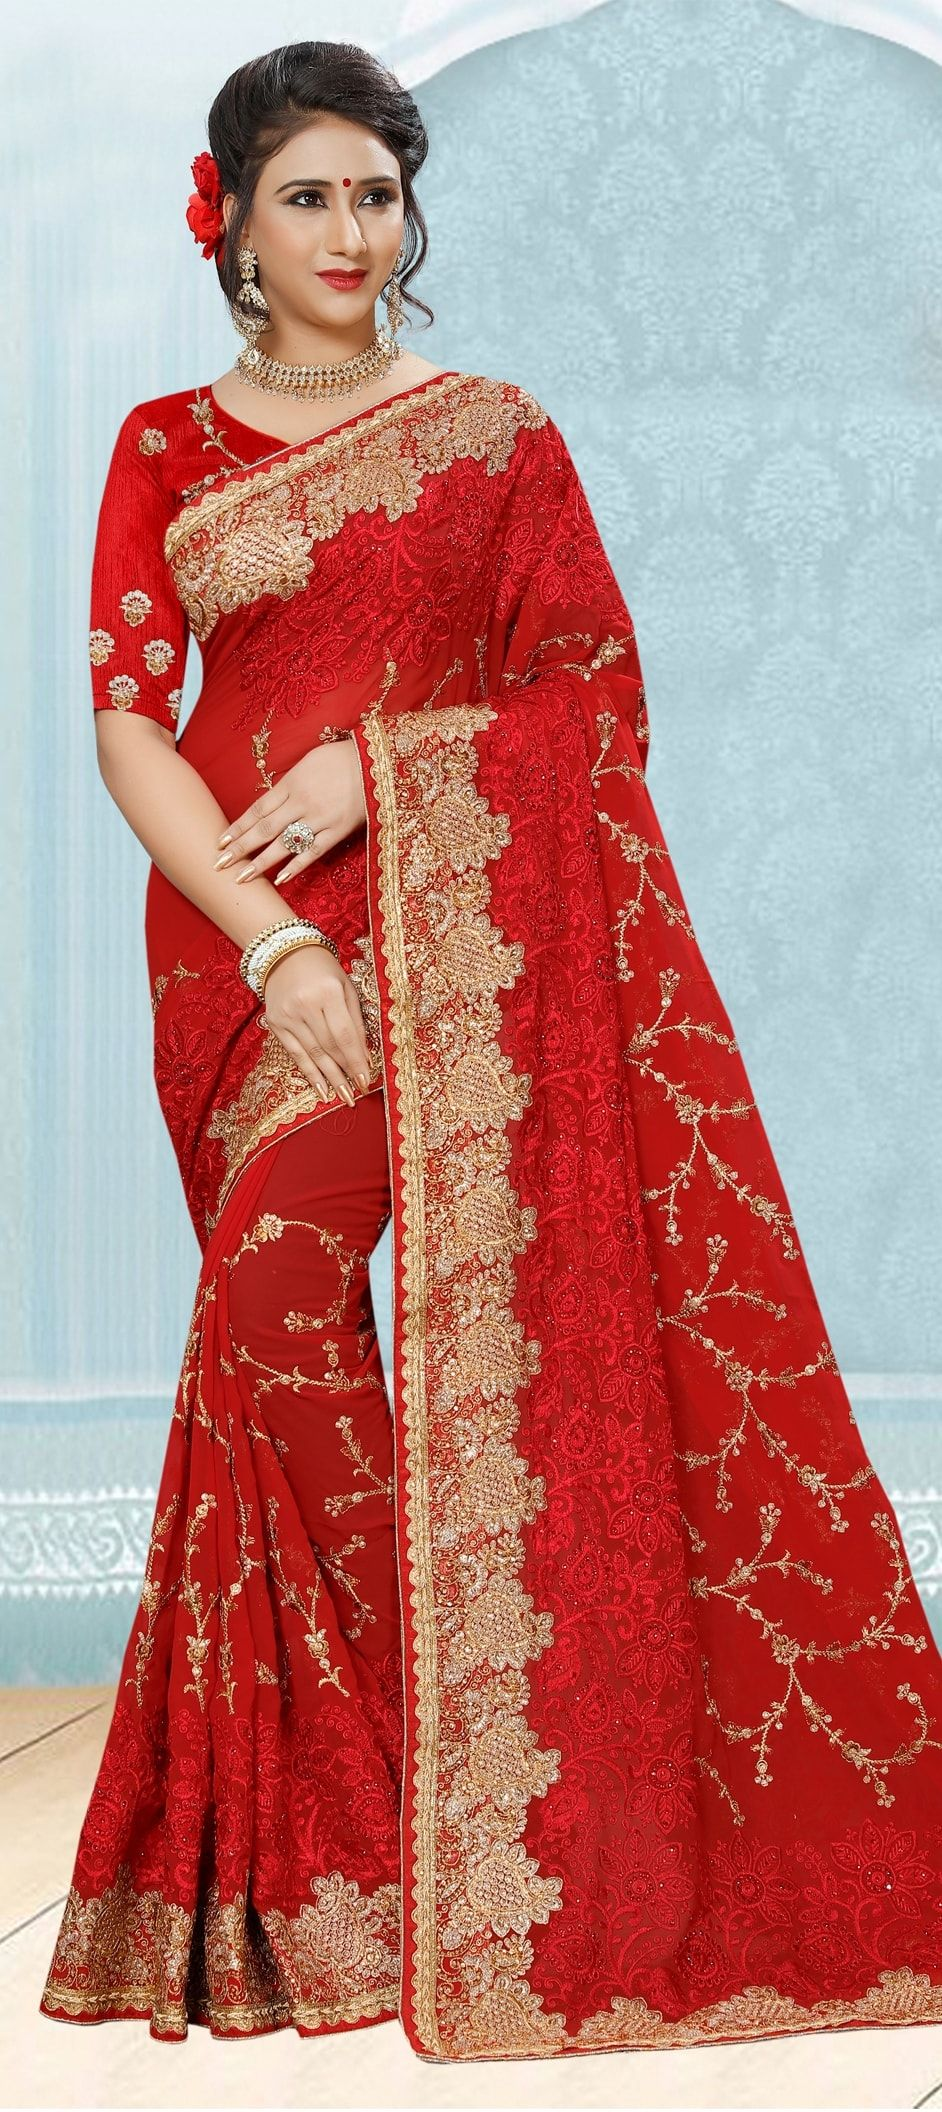 5a652e1a1bf 775317  Red and Maroon color family Bridal Wedding Sarees with ...